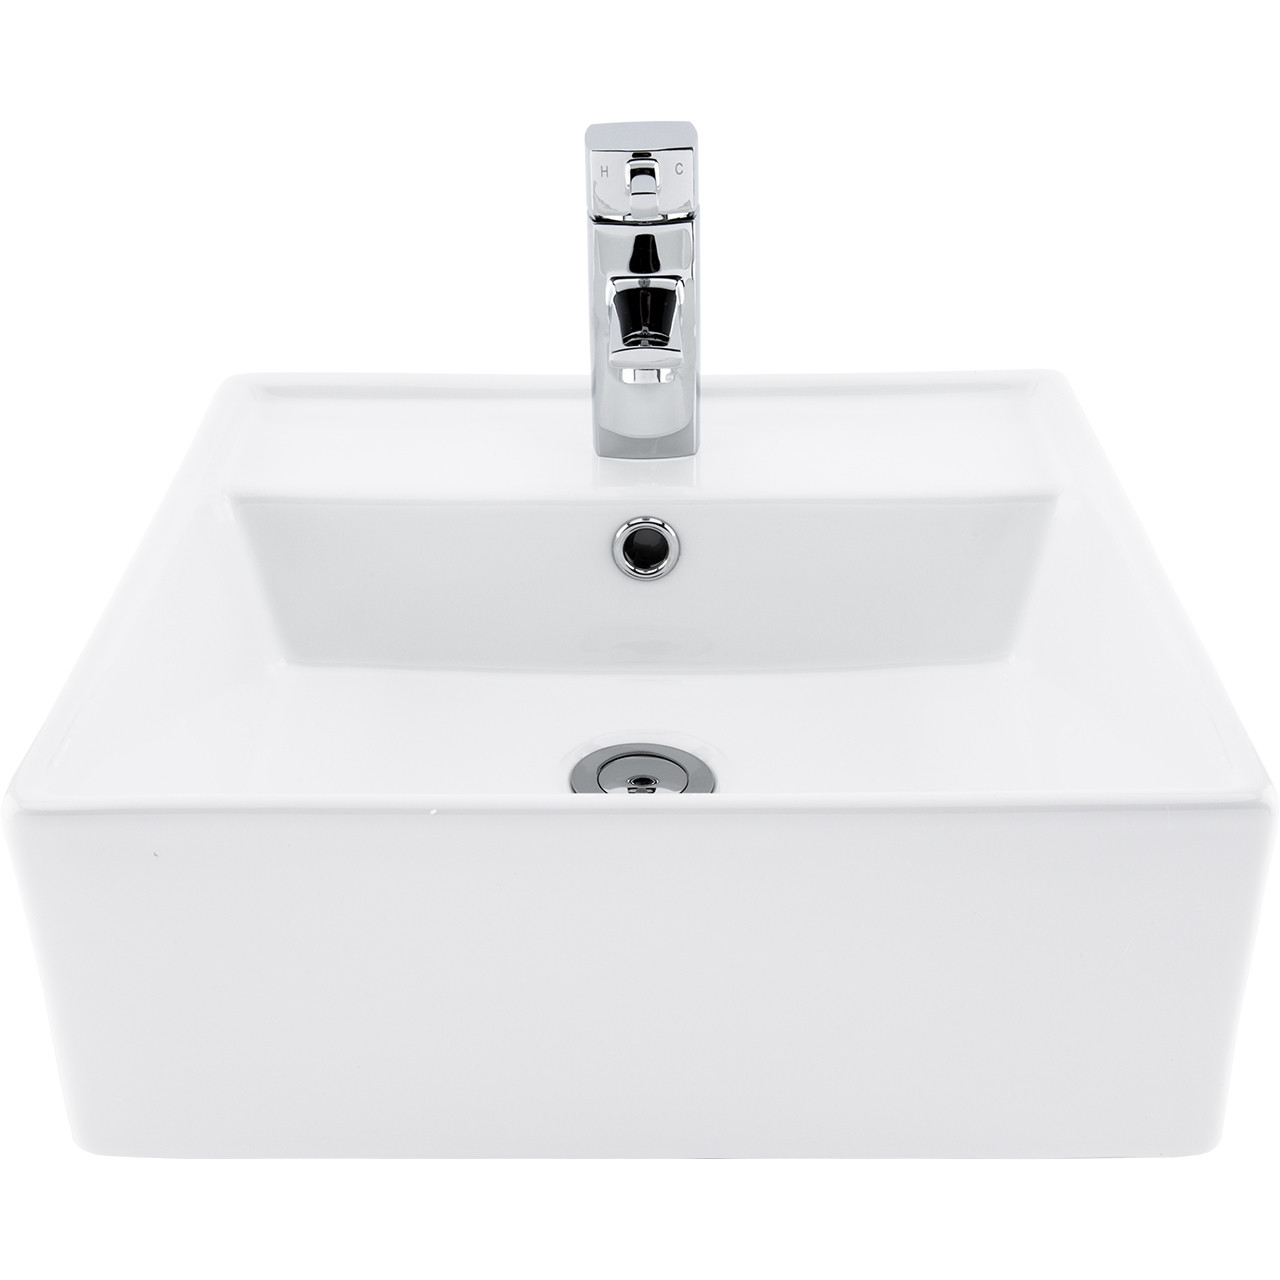 Mertola Counter Top Basin